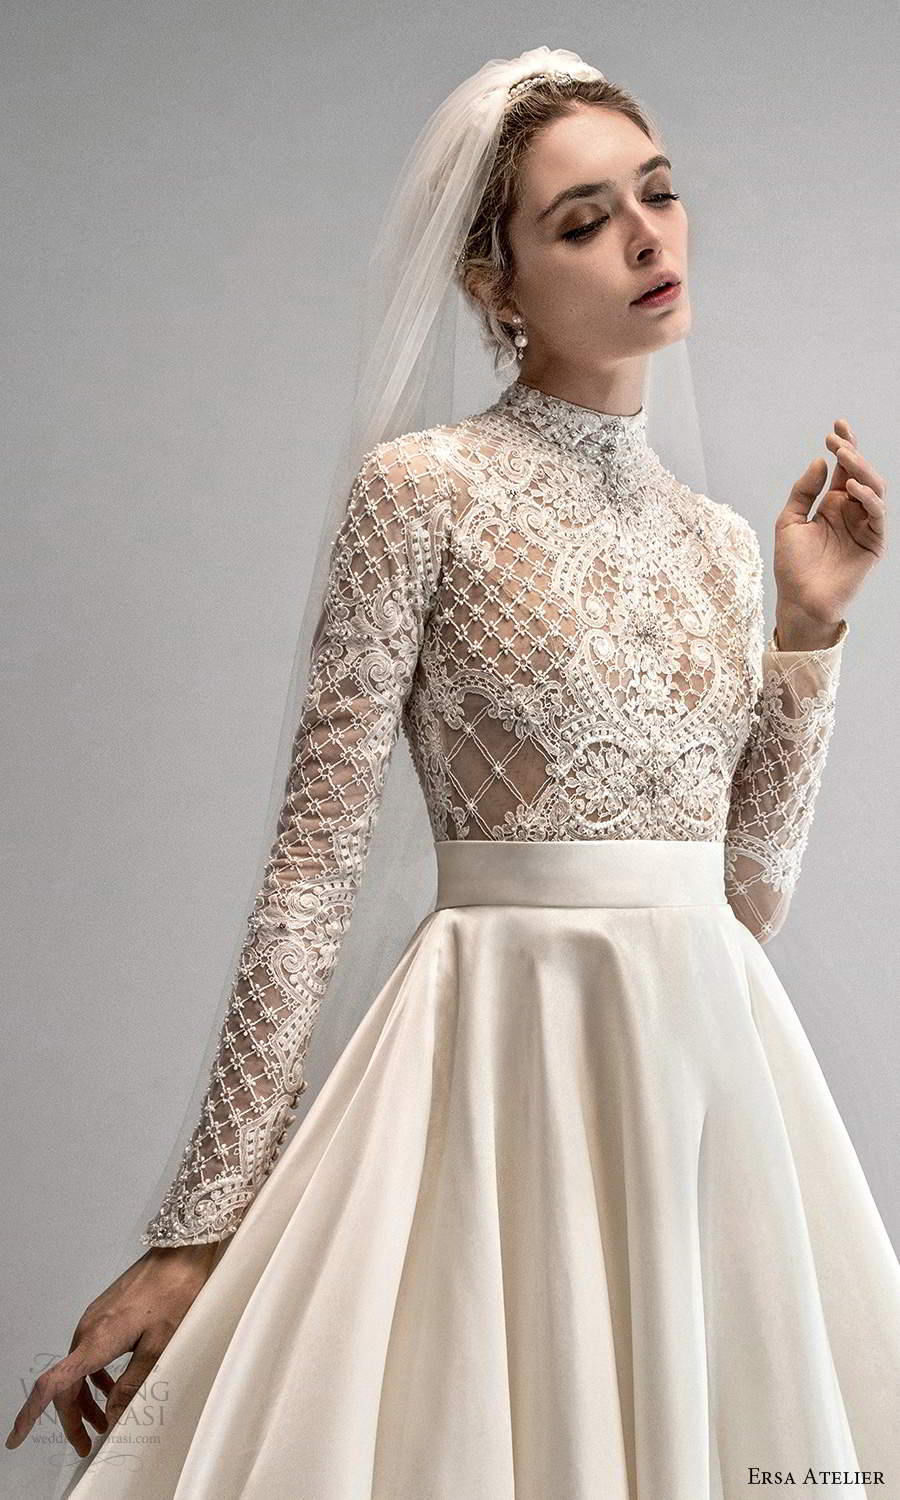 ersa atelier spring 2021 bridal long sleeves high neckline embellished bodice clean skirt a line ball gown wedding dress chapel train (6) mv